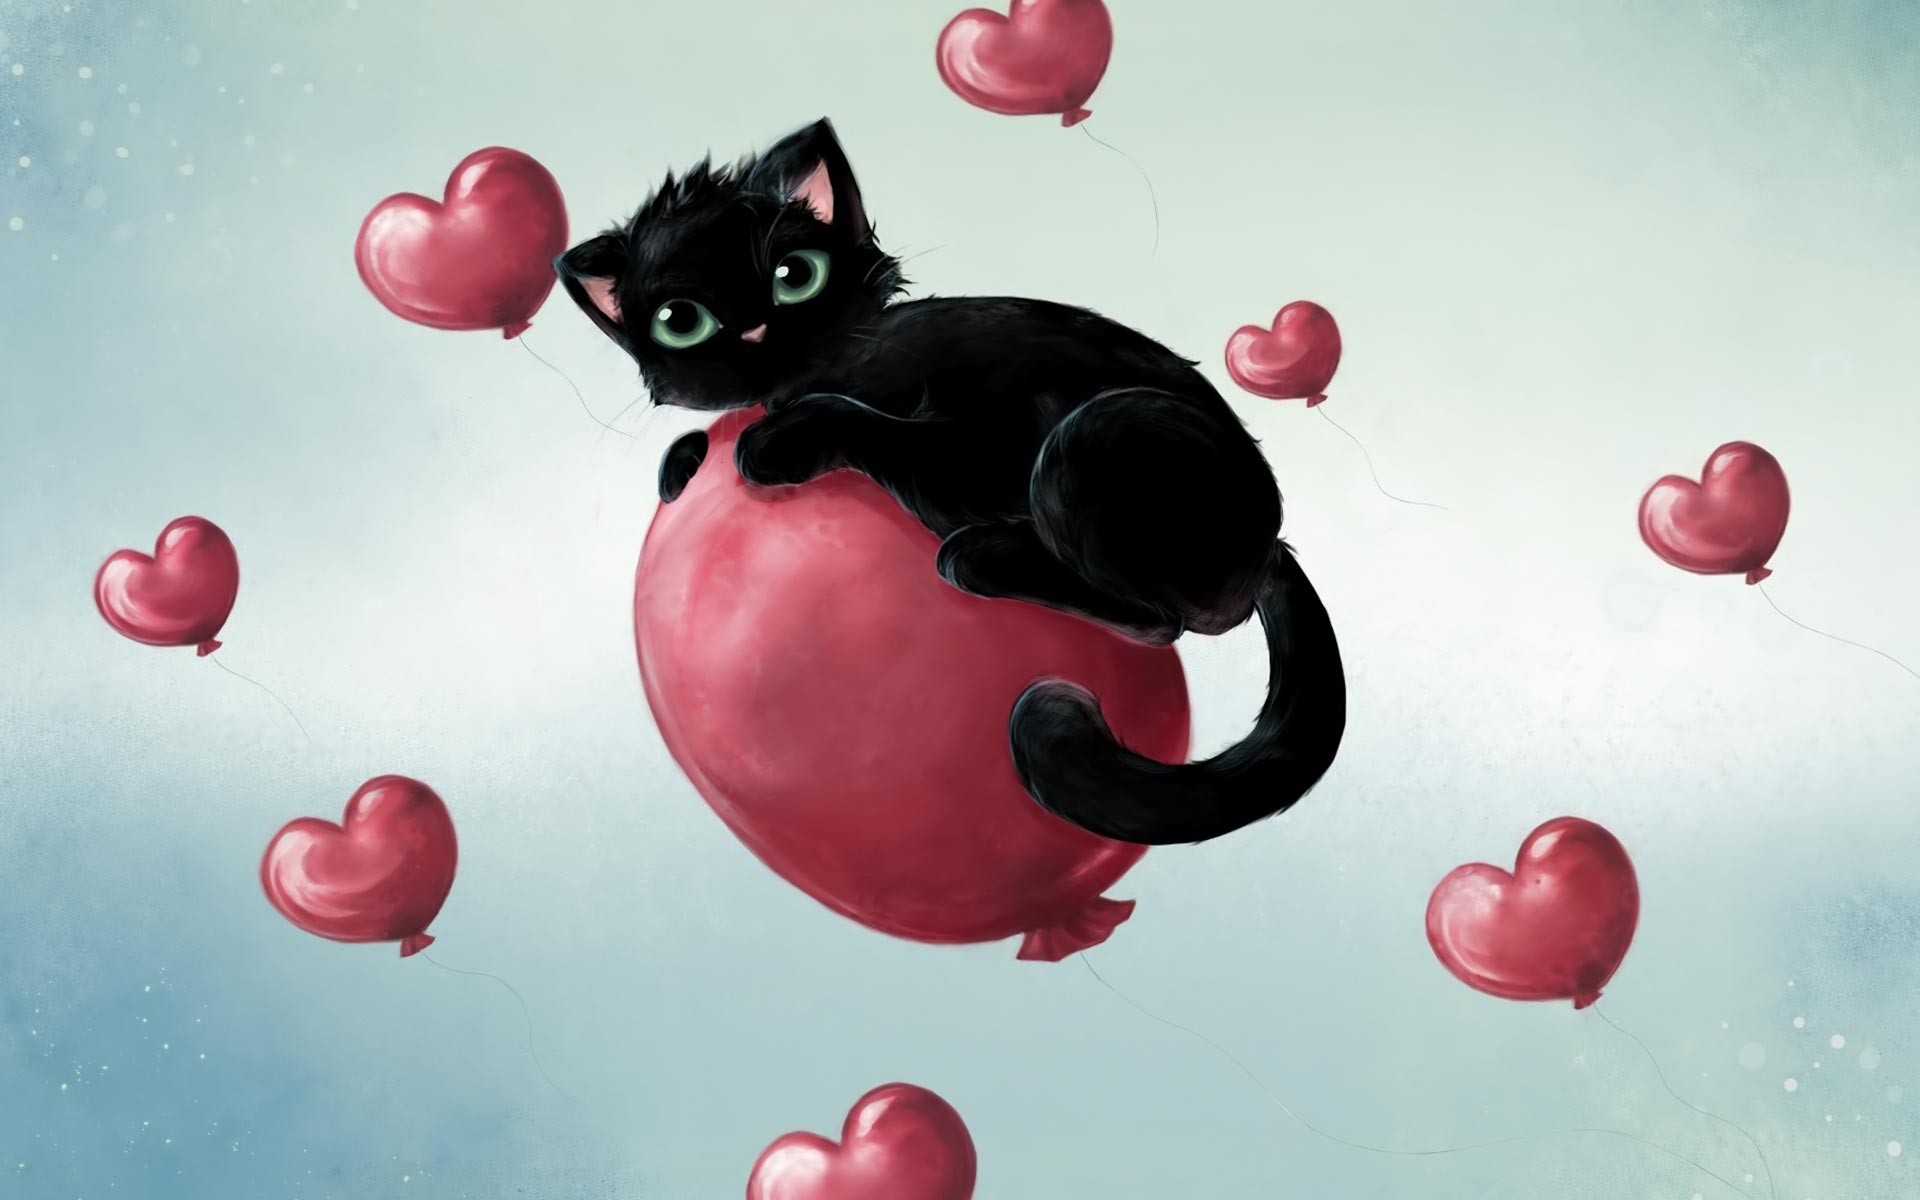 Desktop backgrounds Backgrounds Holiday Valentines Day kitten 1920x1200